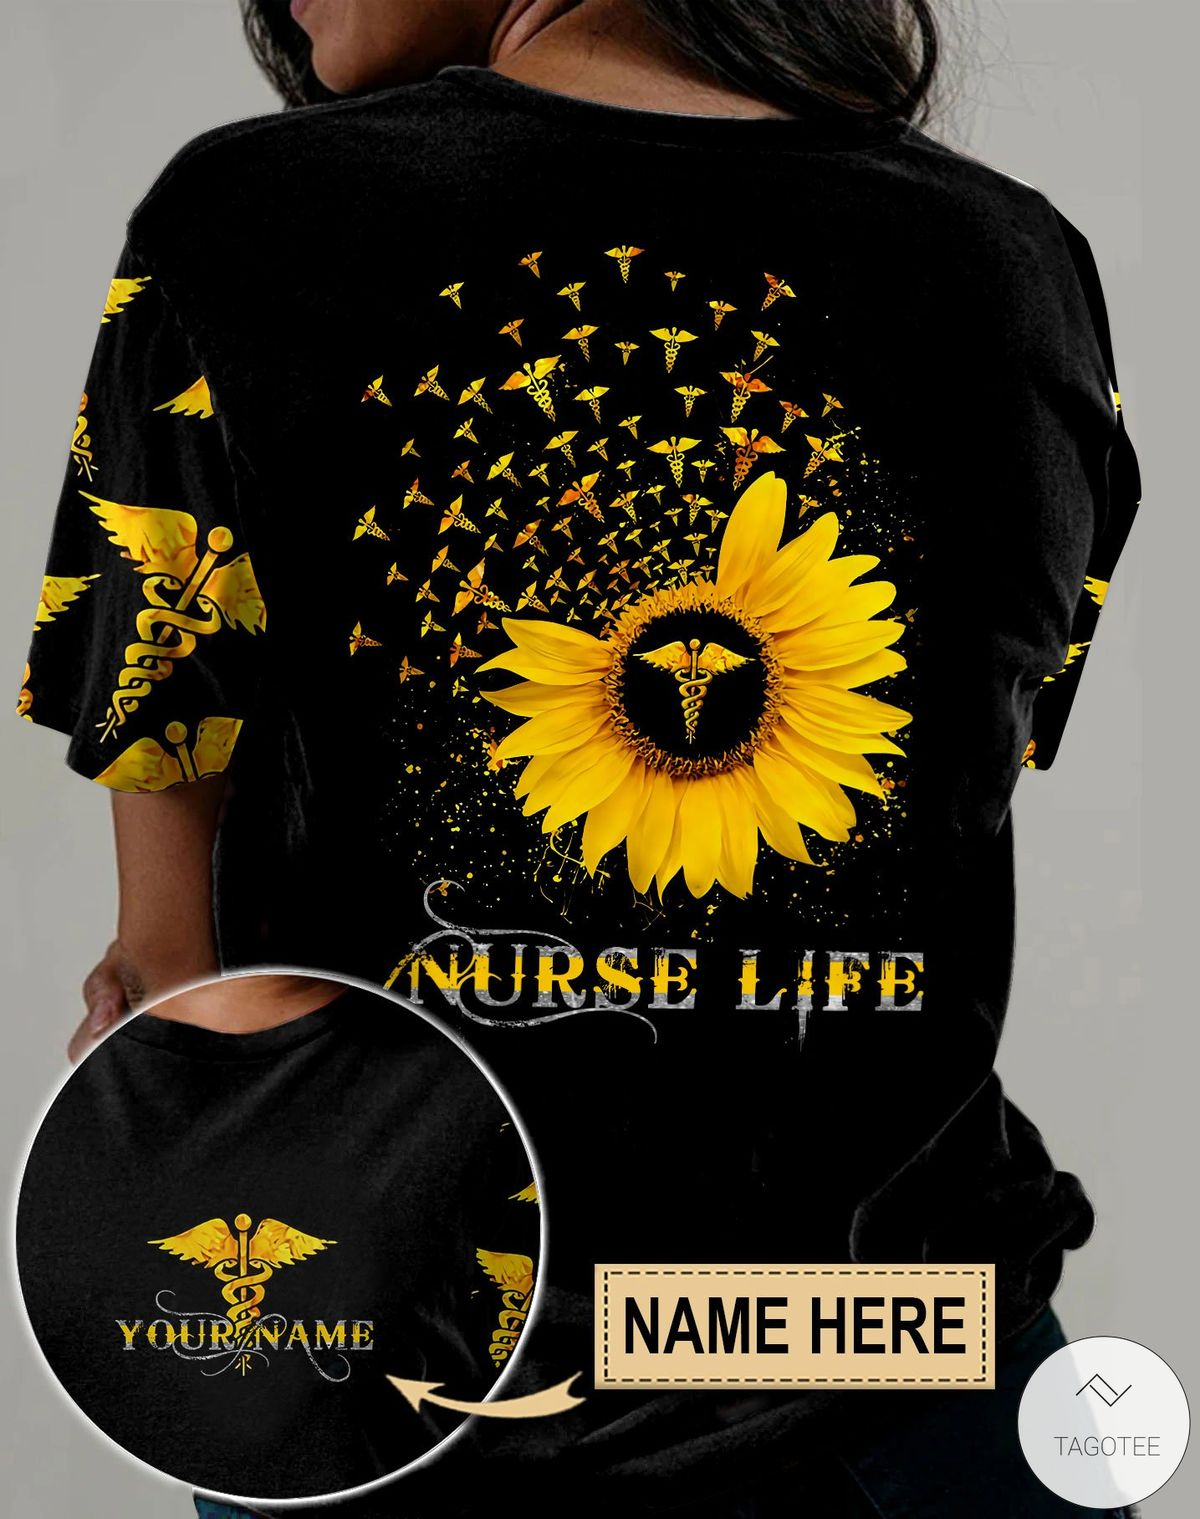 Personalized Nurse Life Sunflower 3D All Over Print T-shirt, Hoodie